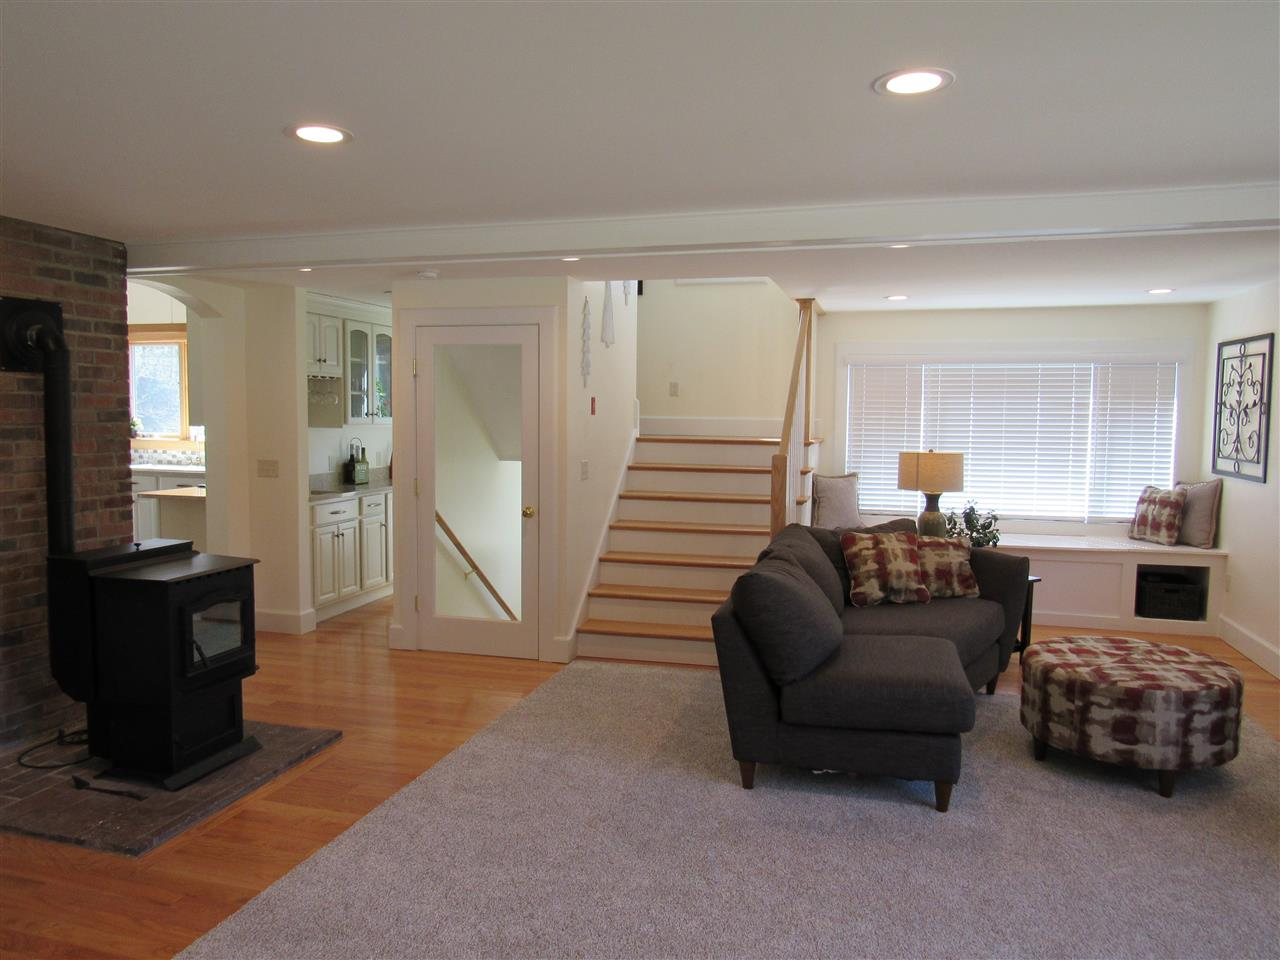 15 Fay Martin Road Richmond Nh Monadnock Region Residential Home For Sale